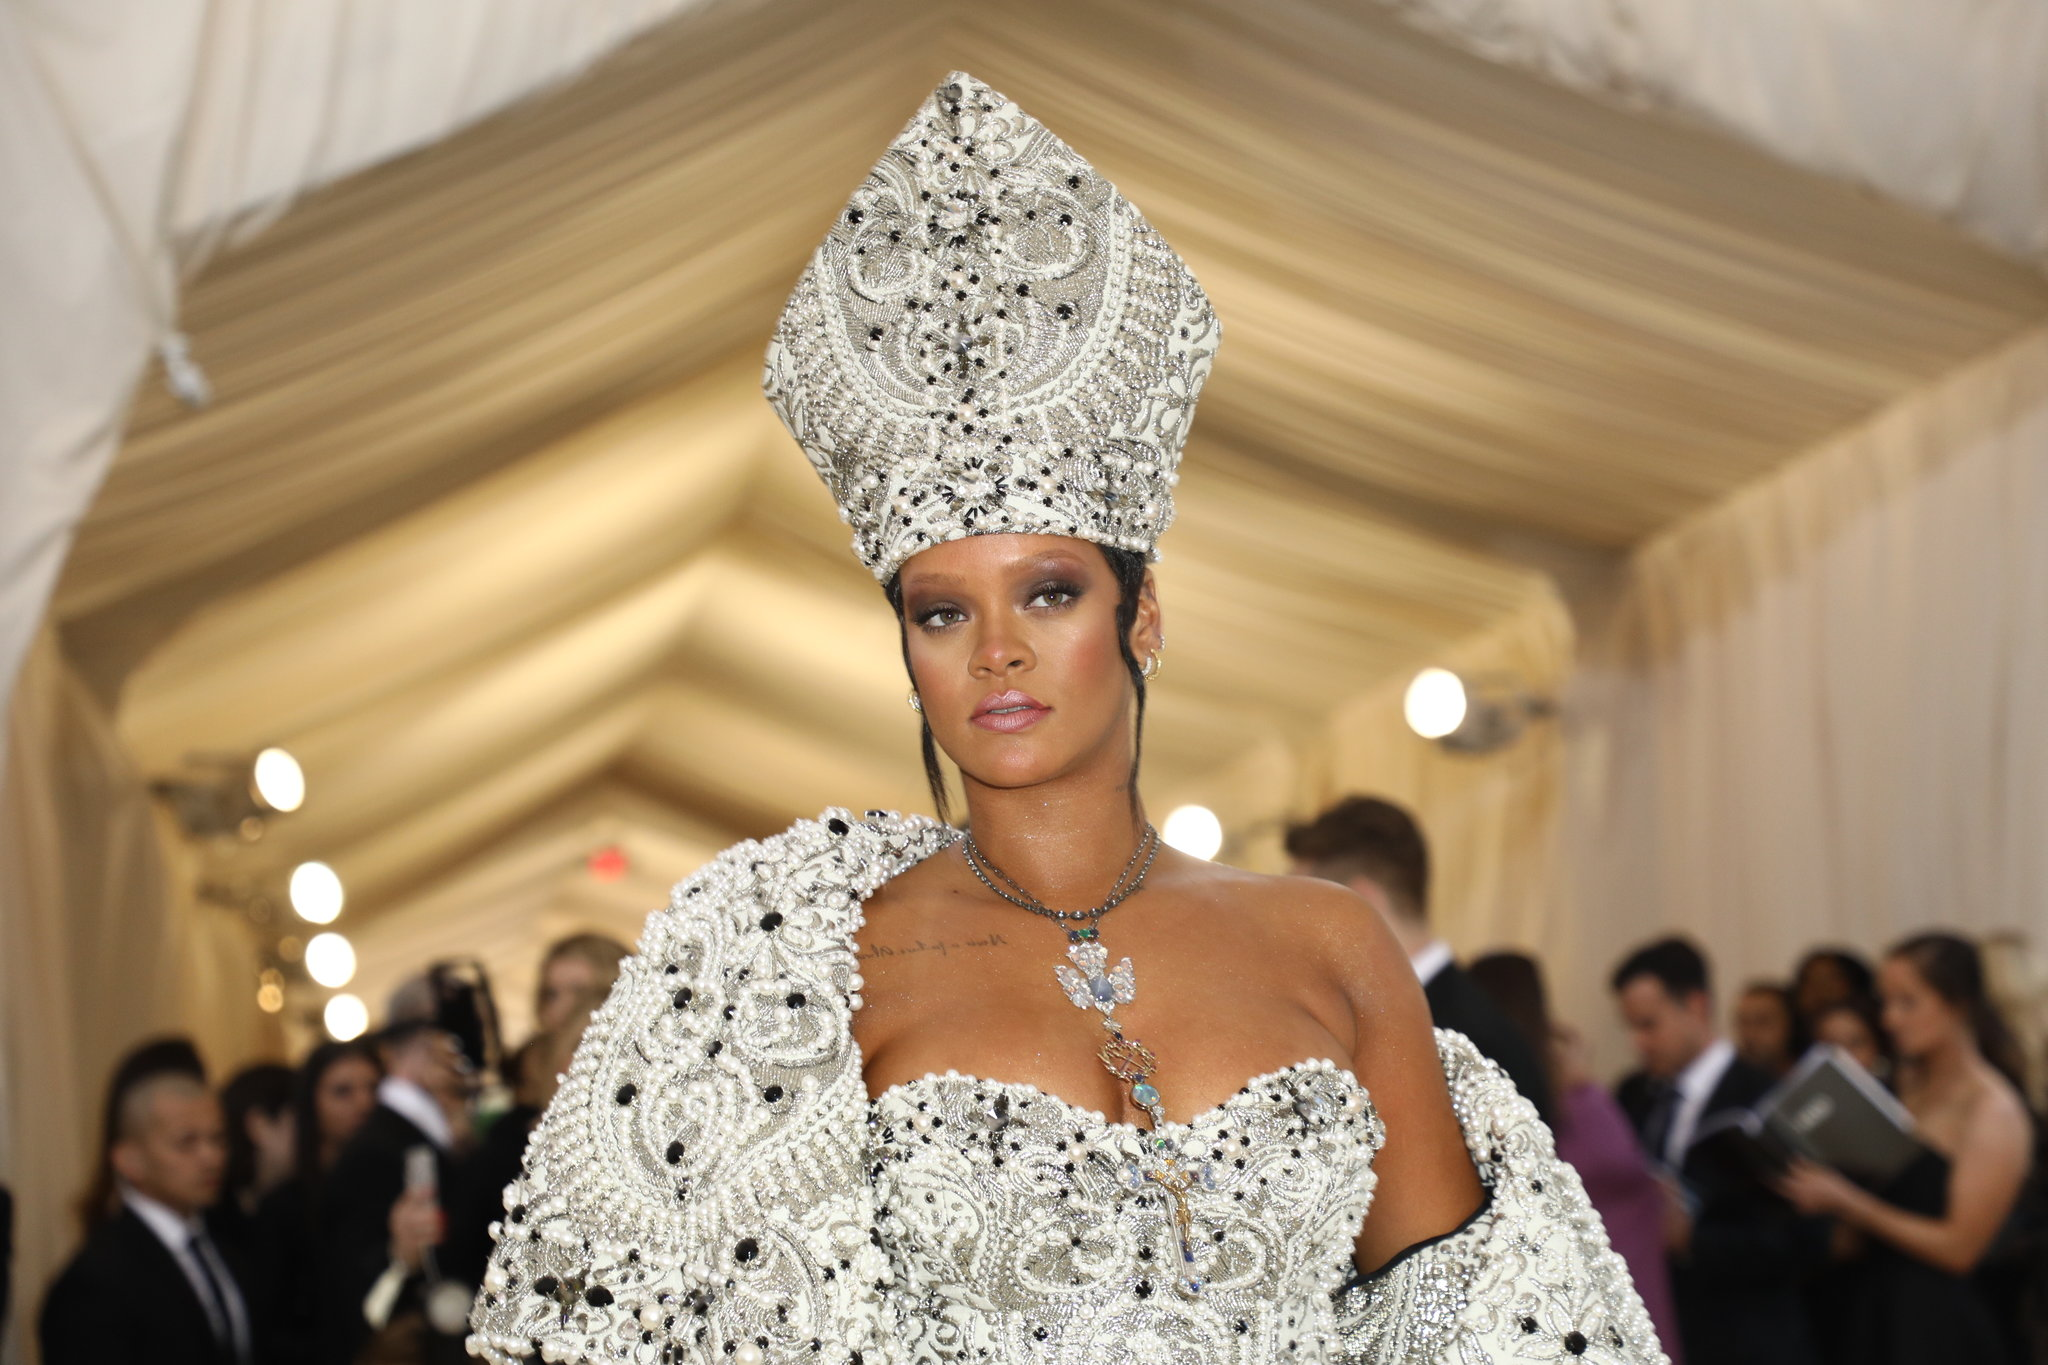 Rihanna at the Costume Institute Gala last year.CreditCreditDamon Winter/The New York Times